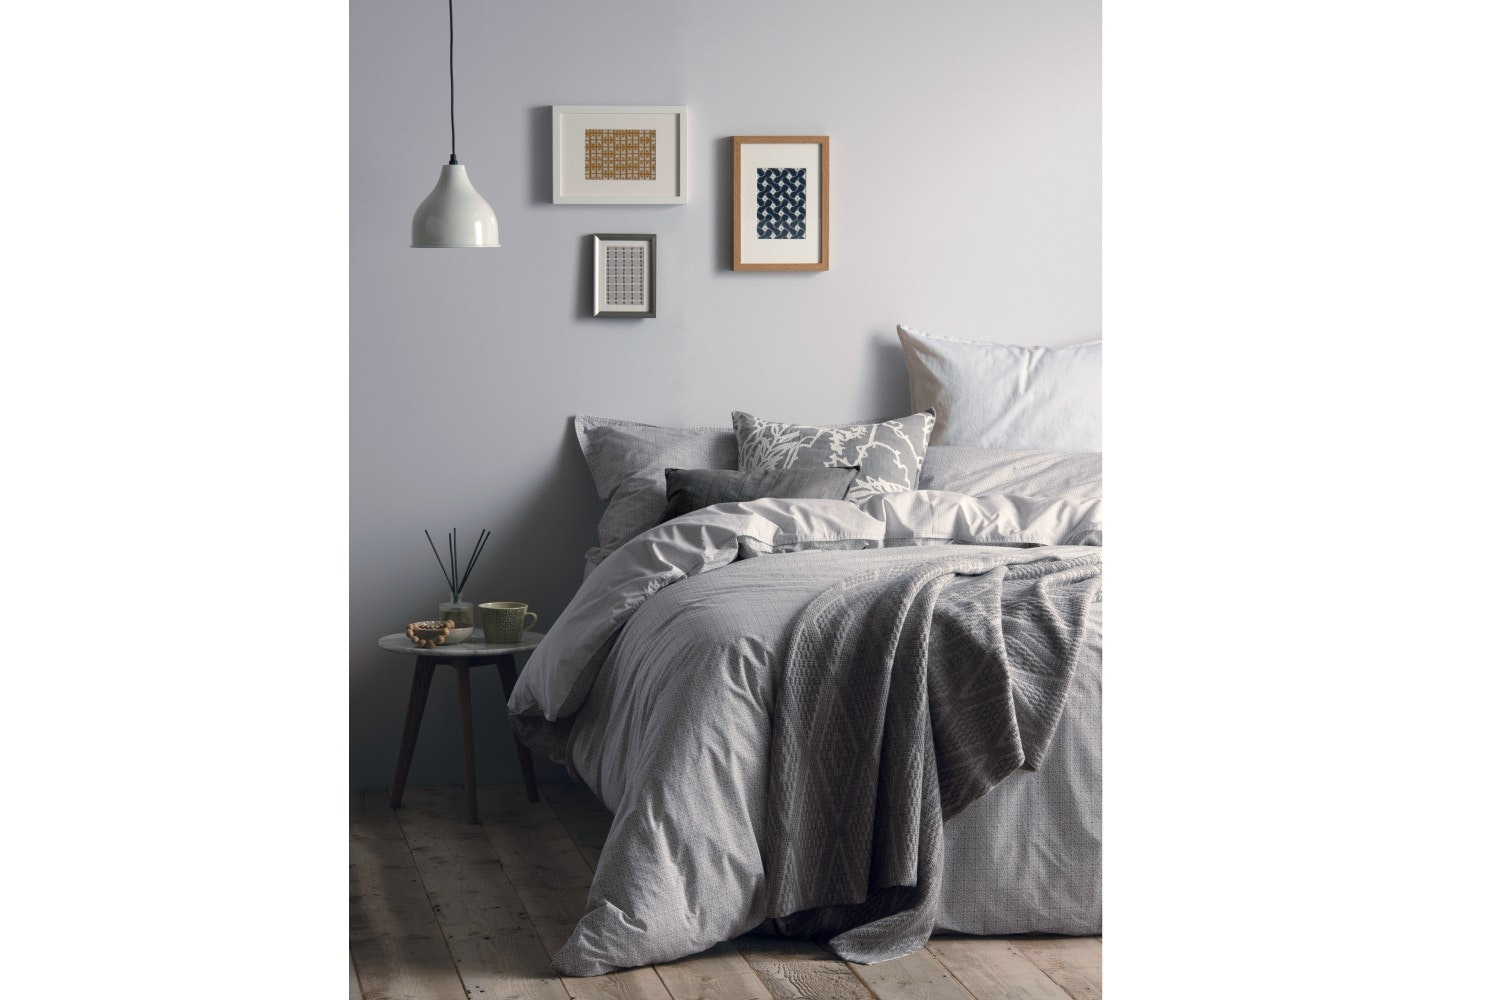 Murmur Mosaic Duvet Cover Grey|Double